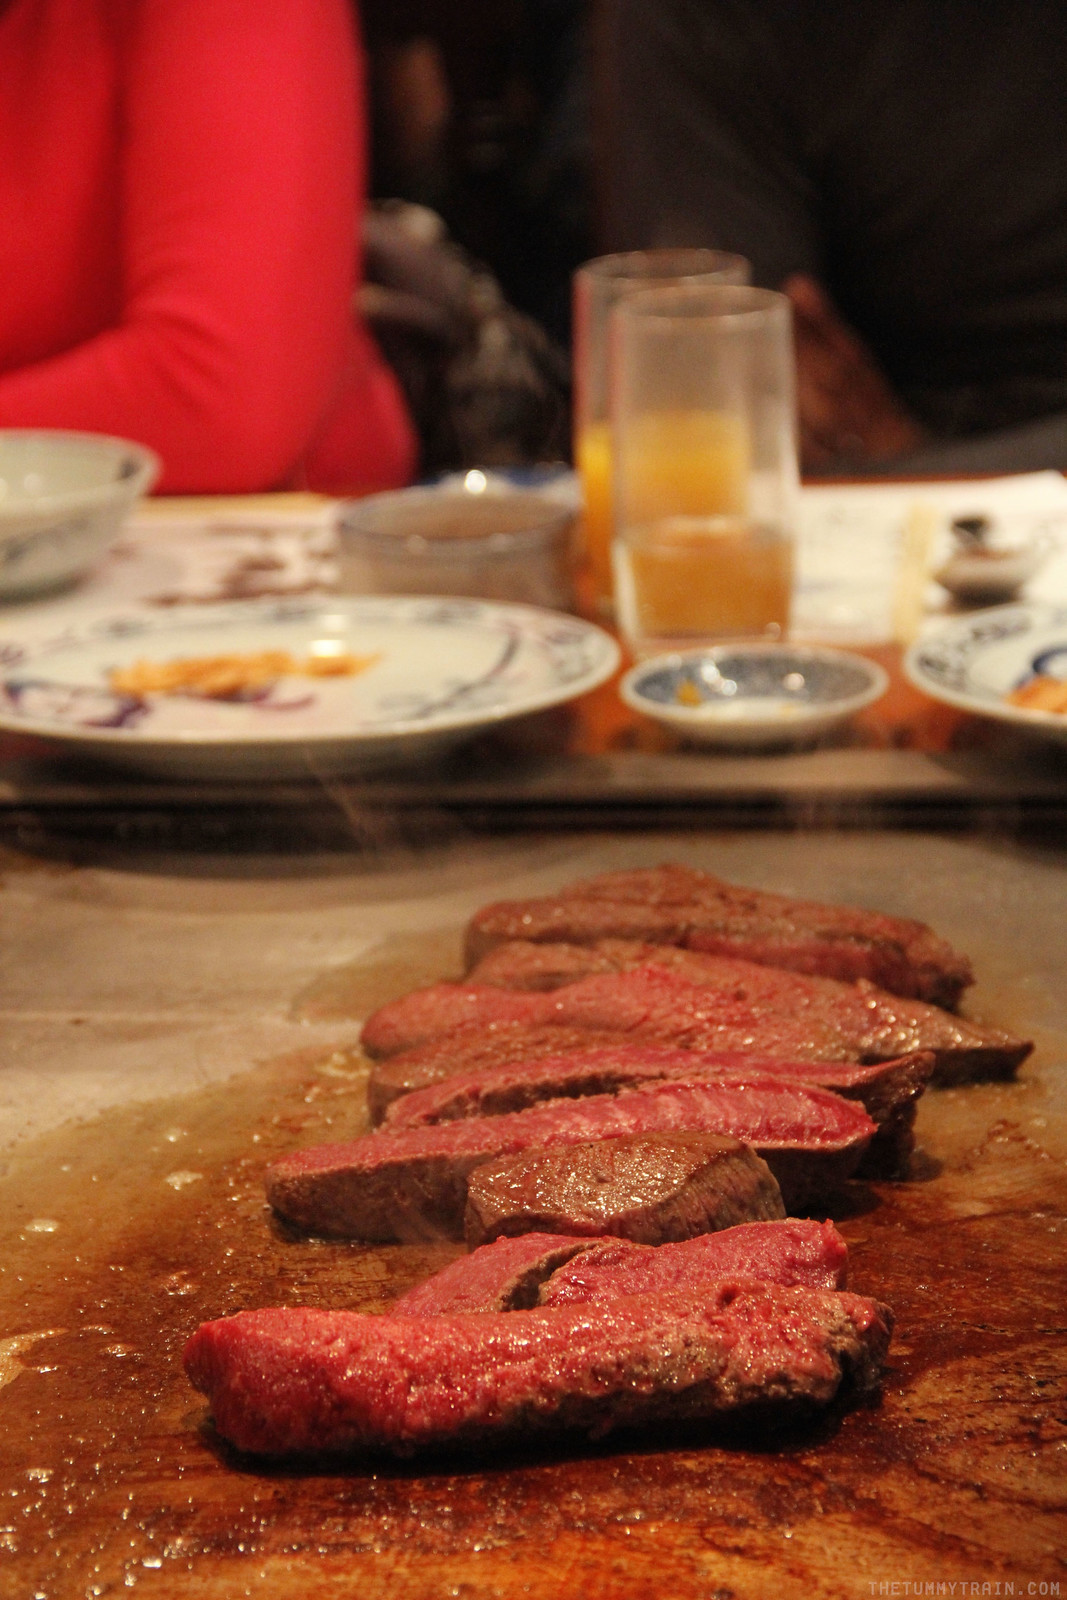 24954570714 7a506d5c19 h - {Japan Travel Diary 2015} A taste of Kobe Beef at Steak Land Kobe